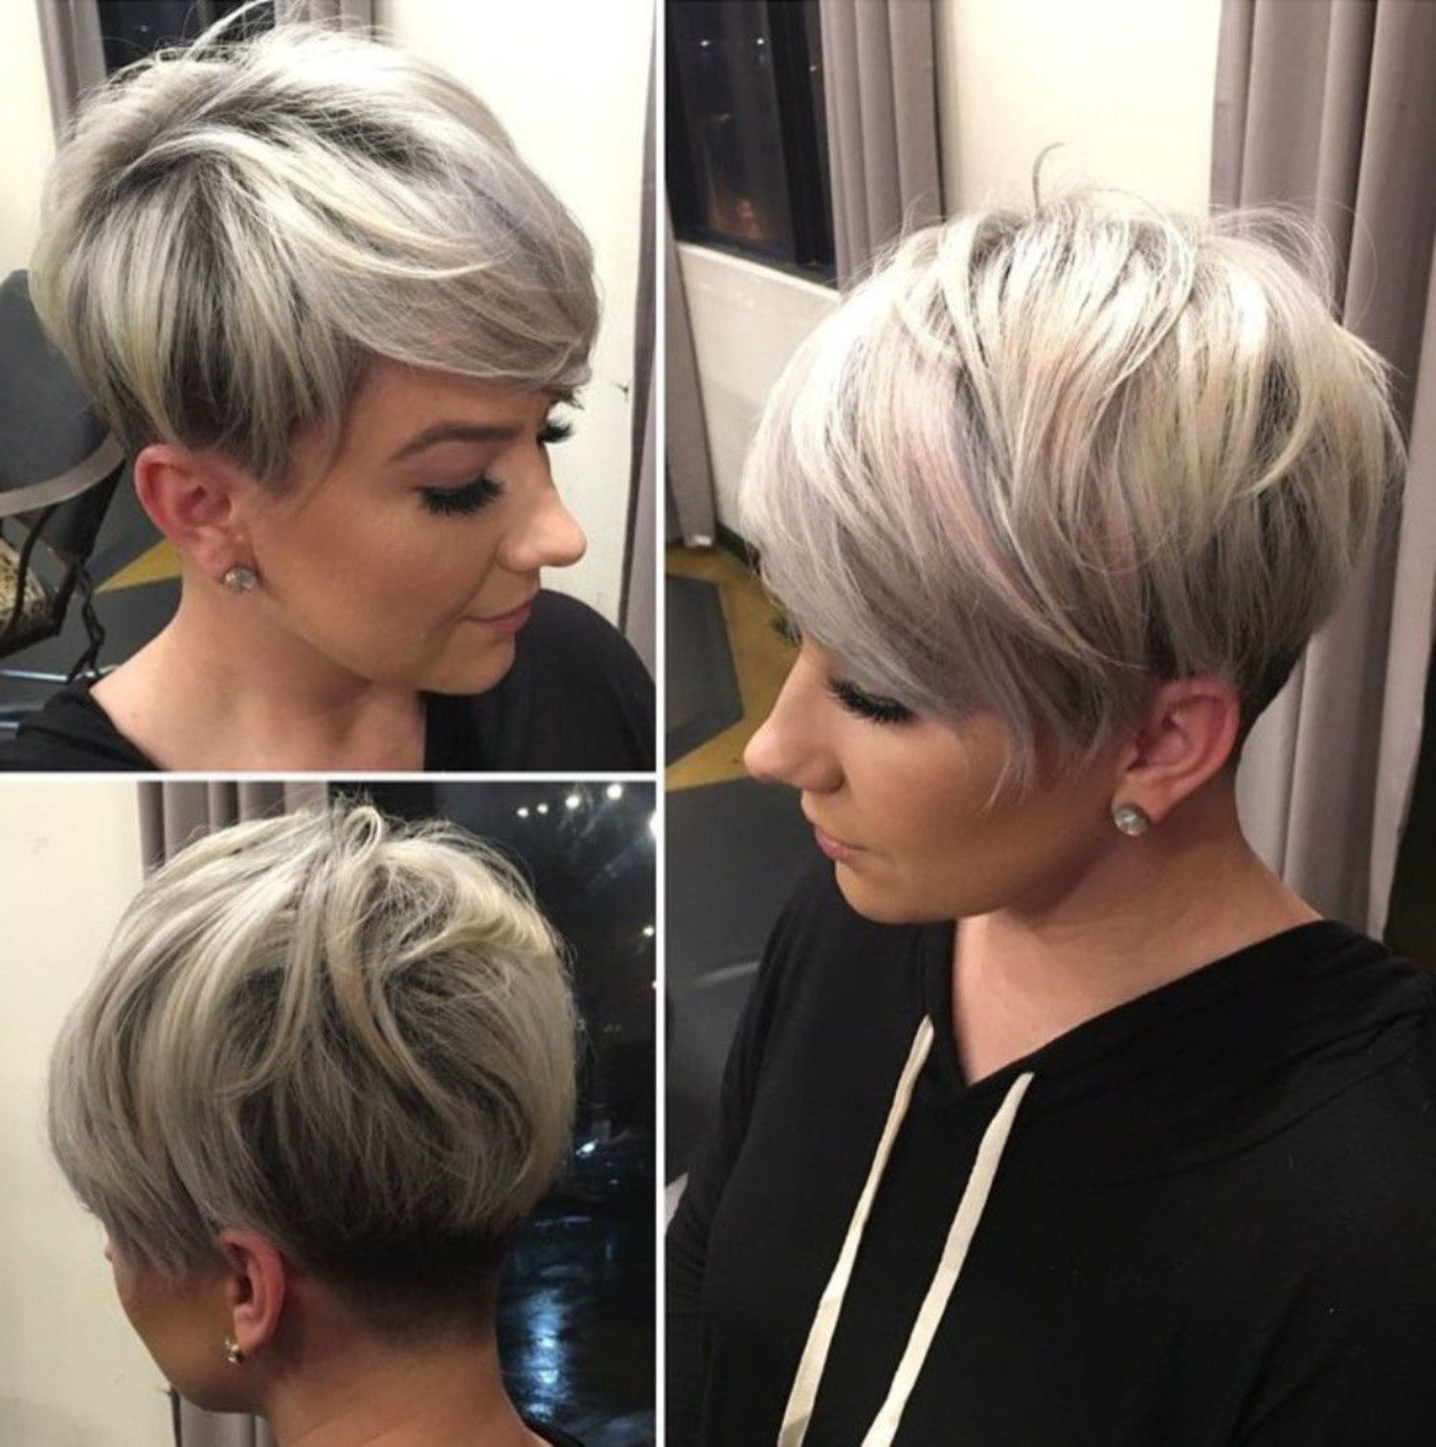 Well Known Short Platinum Blonde Bob Hairstyles In Fashion : 20 Great Cropped Platinum Blonde Bob Hairstyles (View 8 of 20)